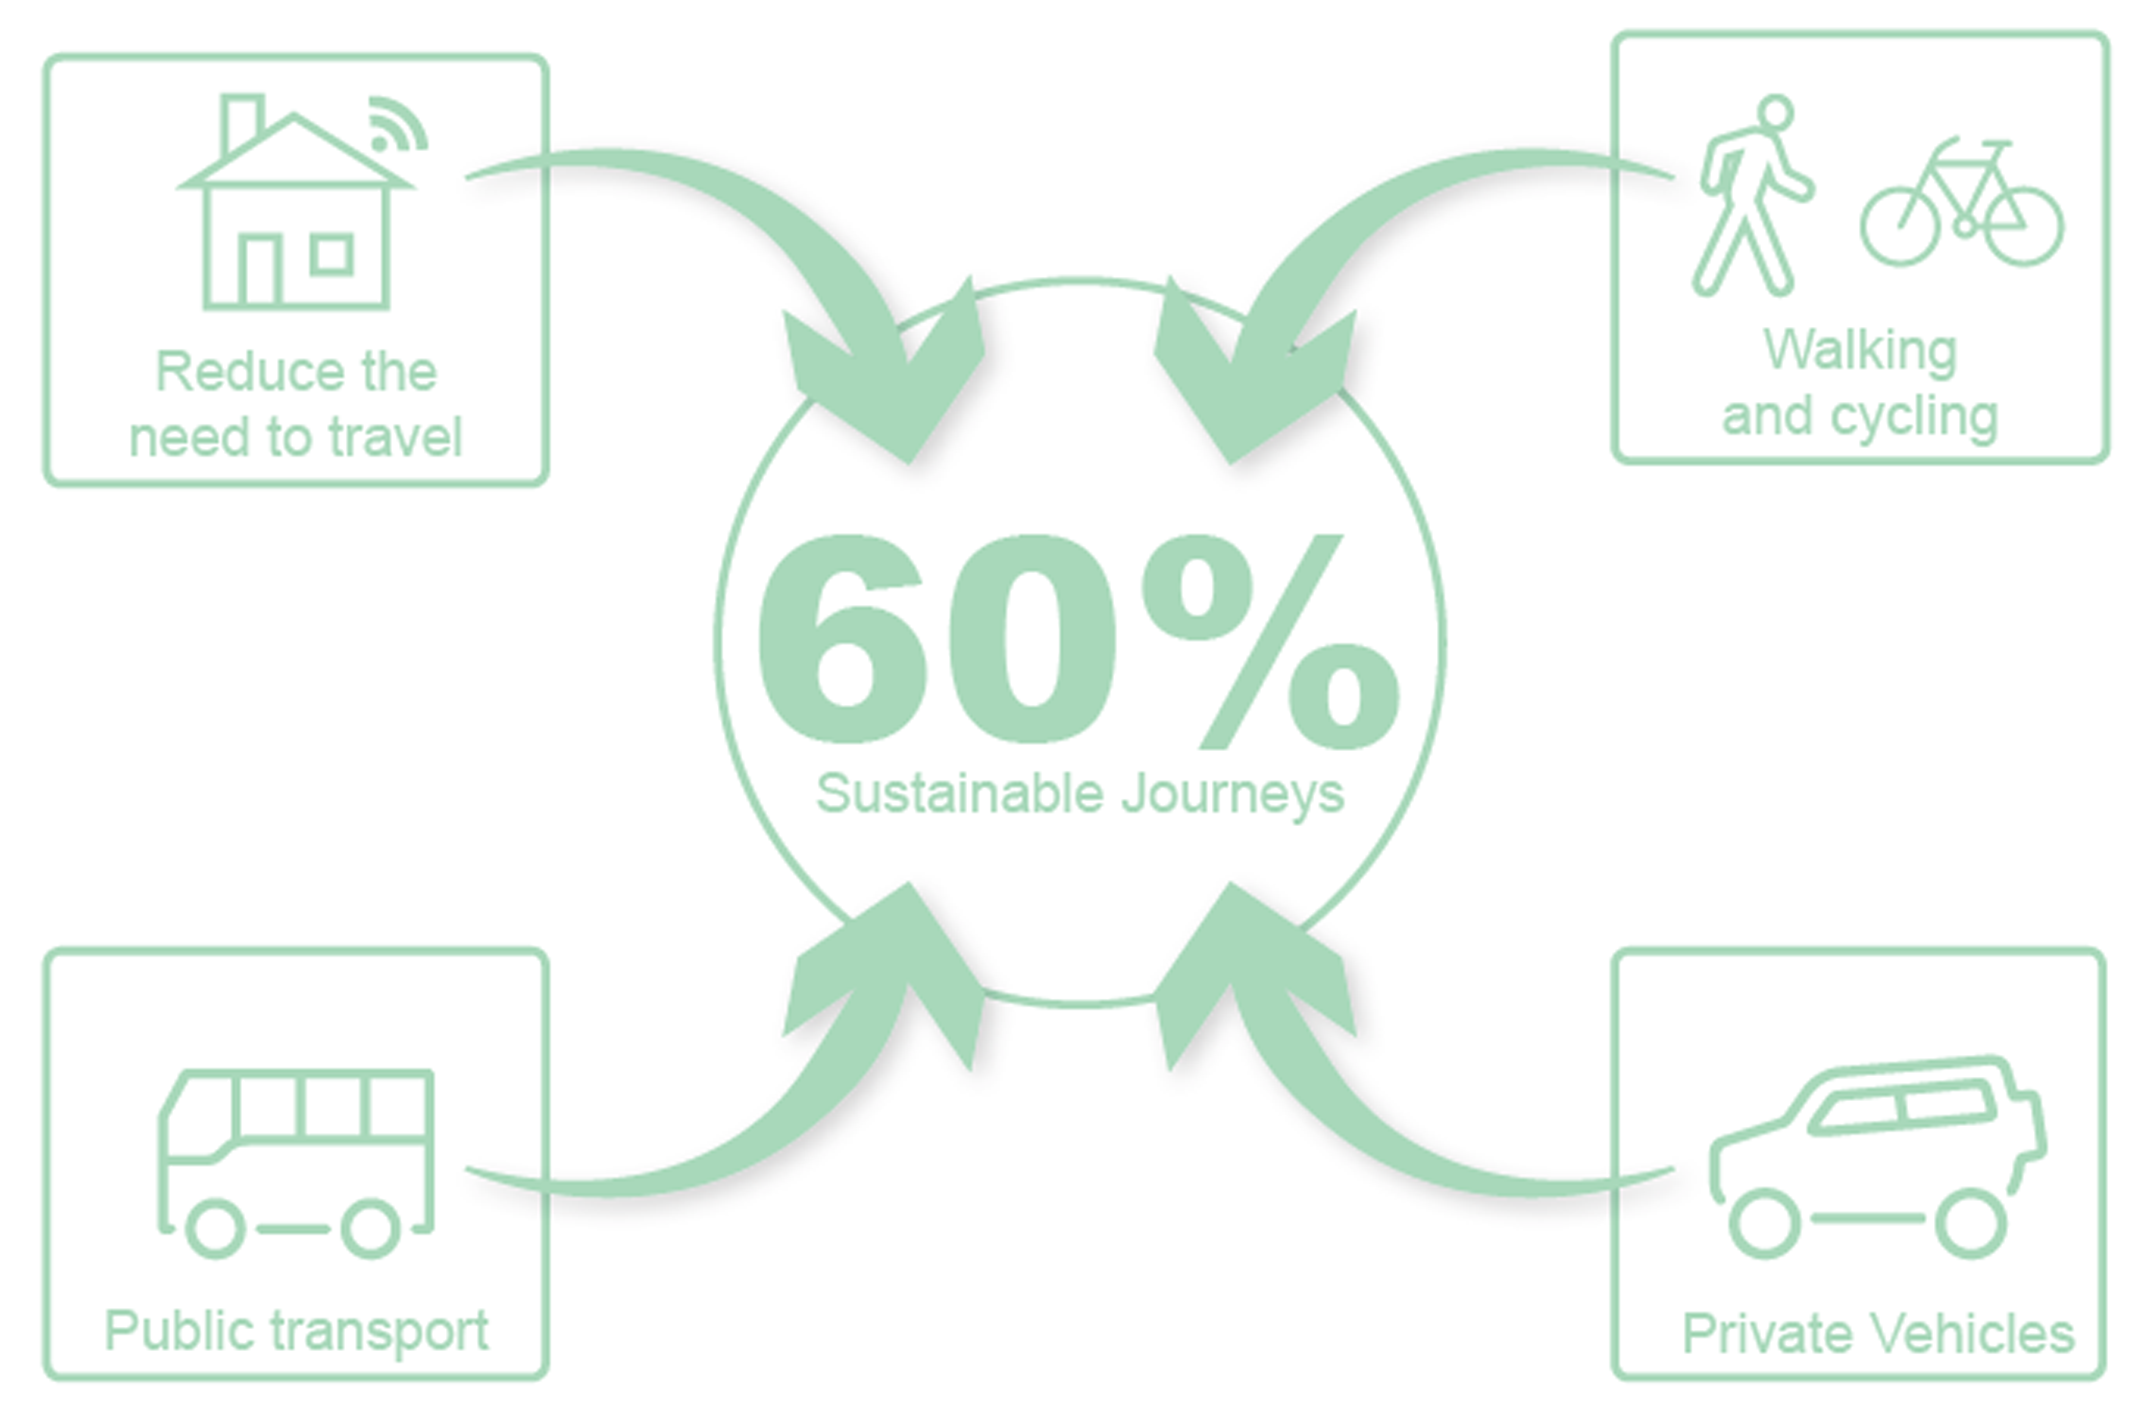 Transport infographic showing 60% of sustainable journeys